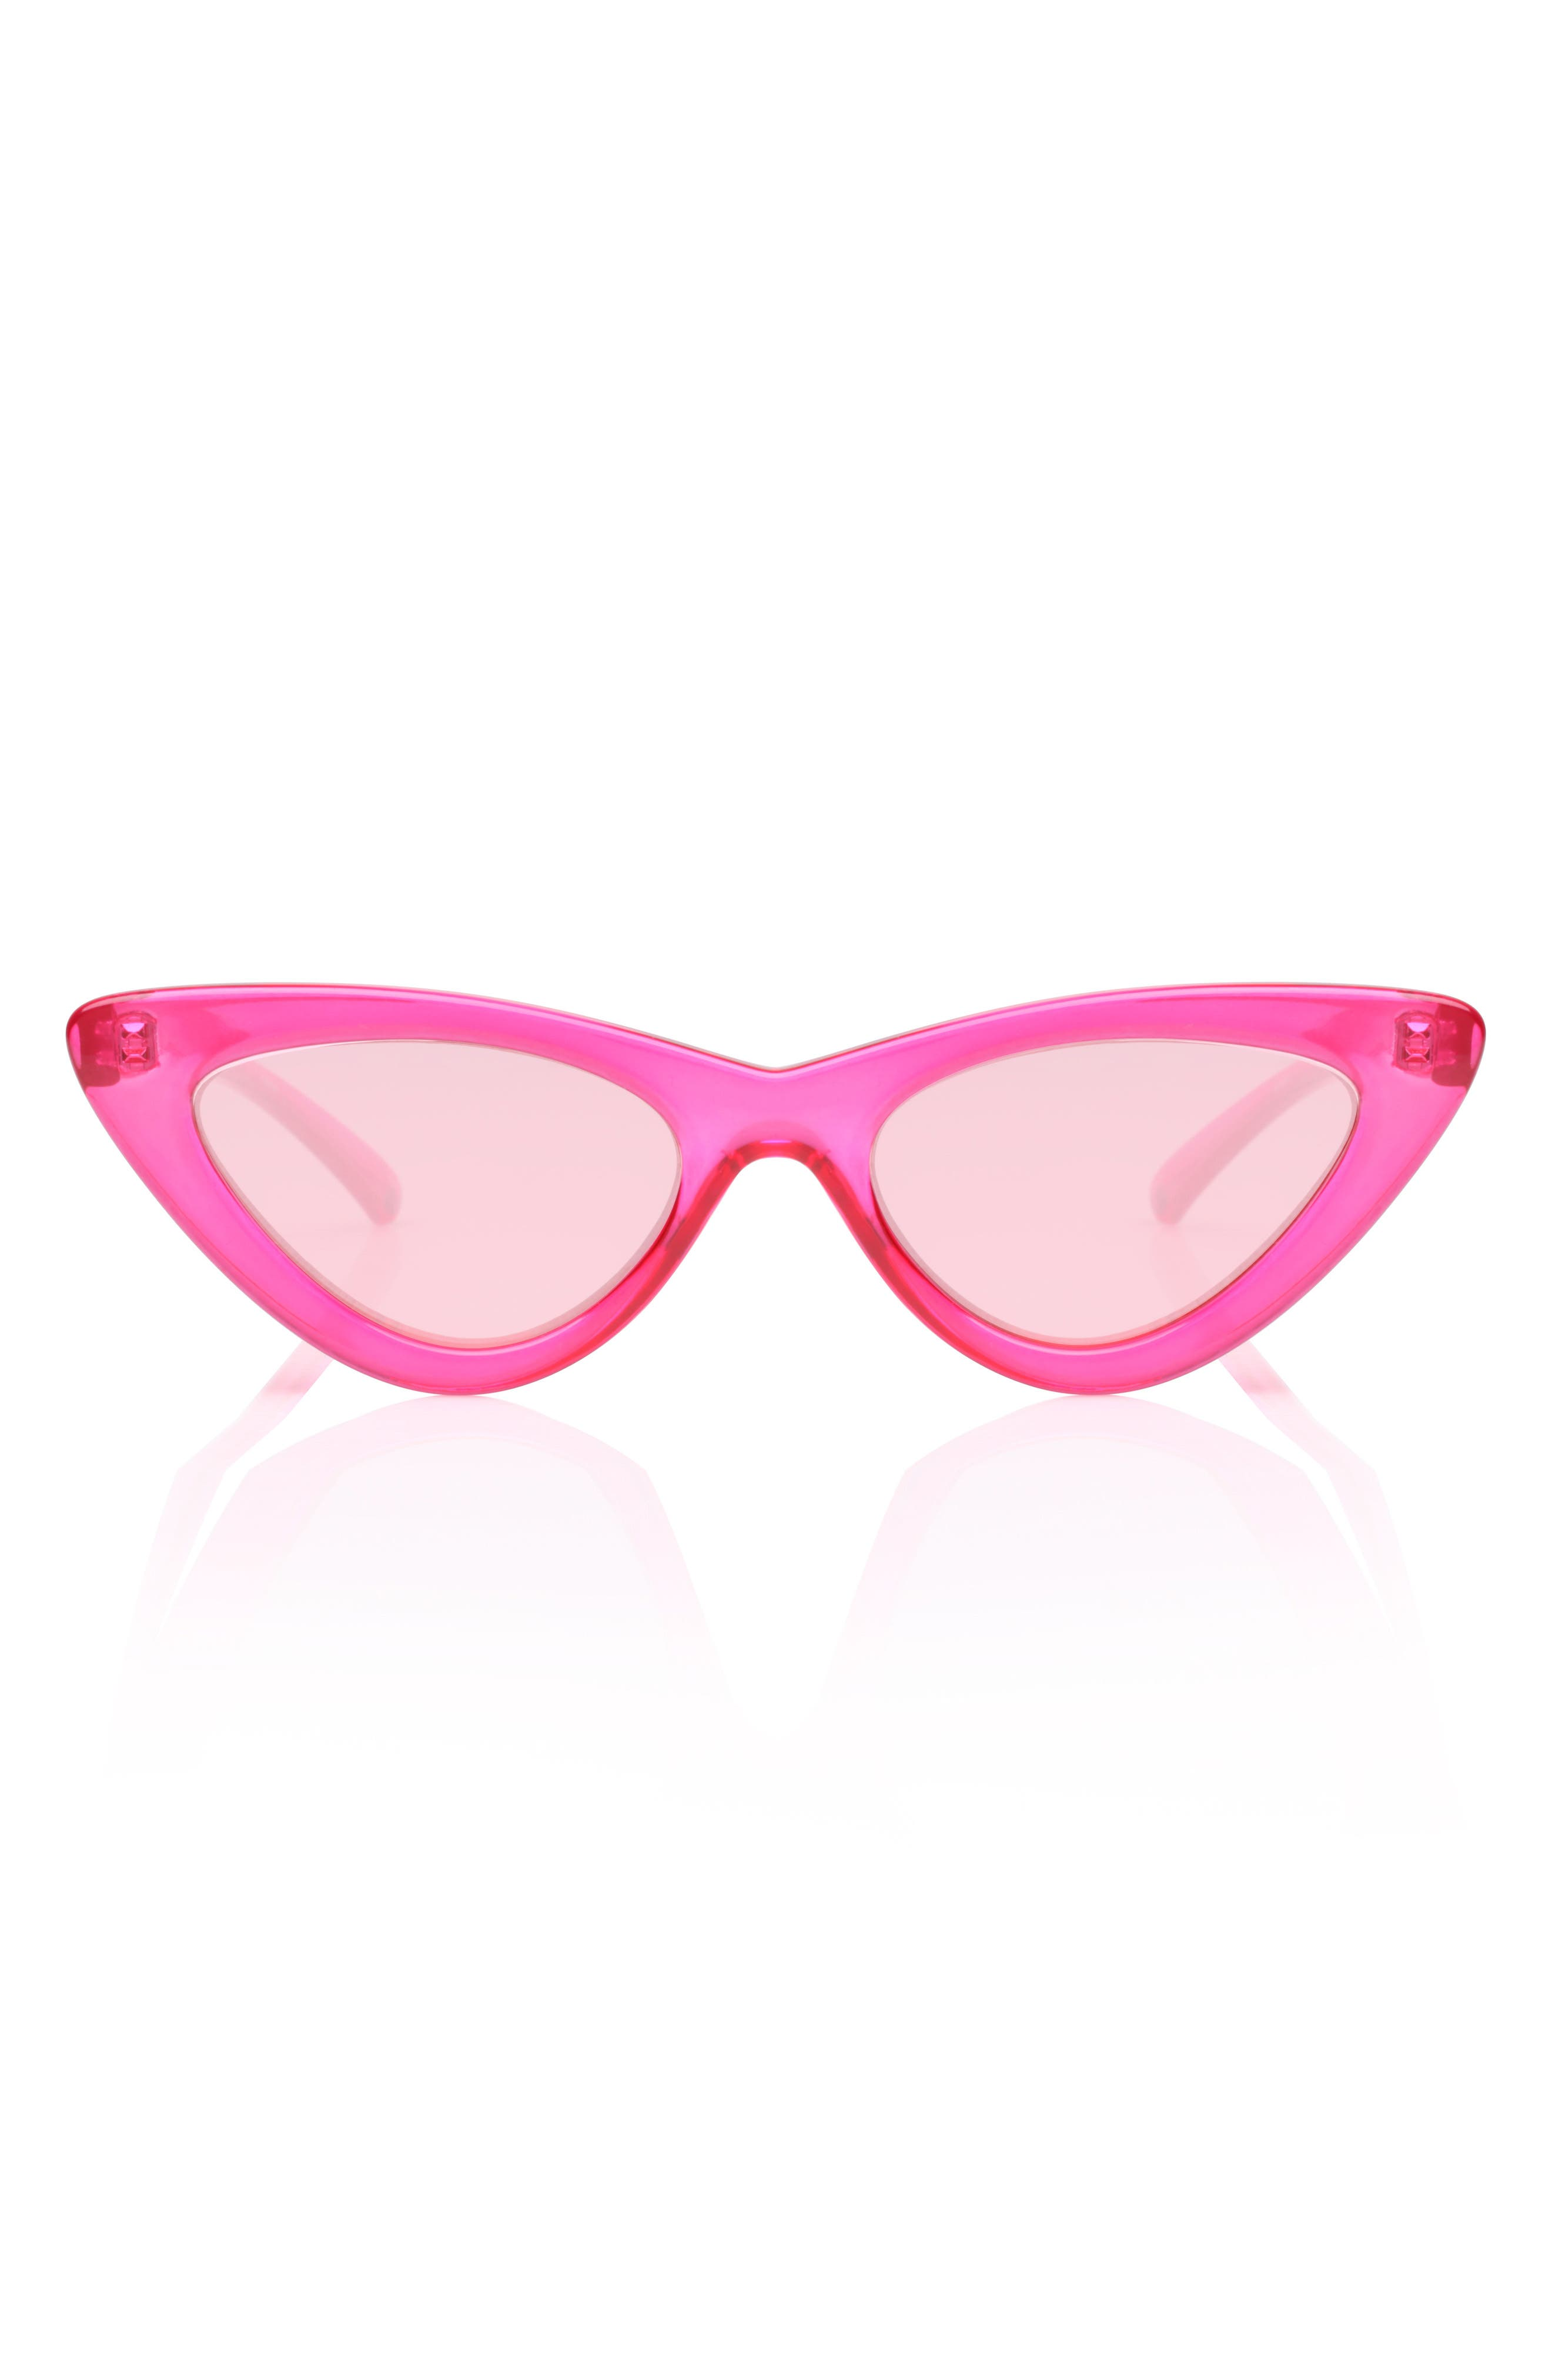 Le Specs x Adam Selman Last Lolita 49mm Cat Eye Sunglasses